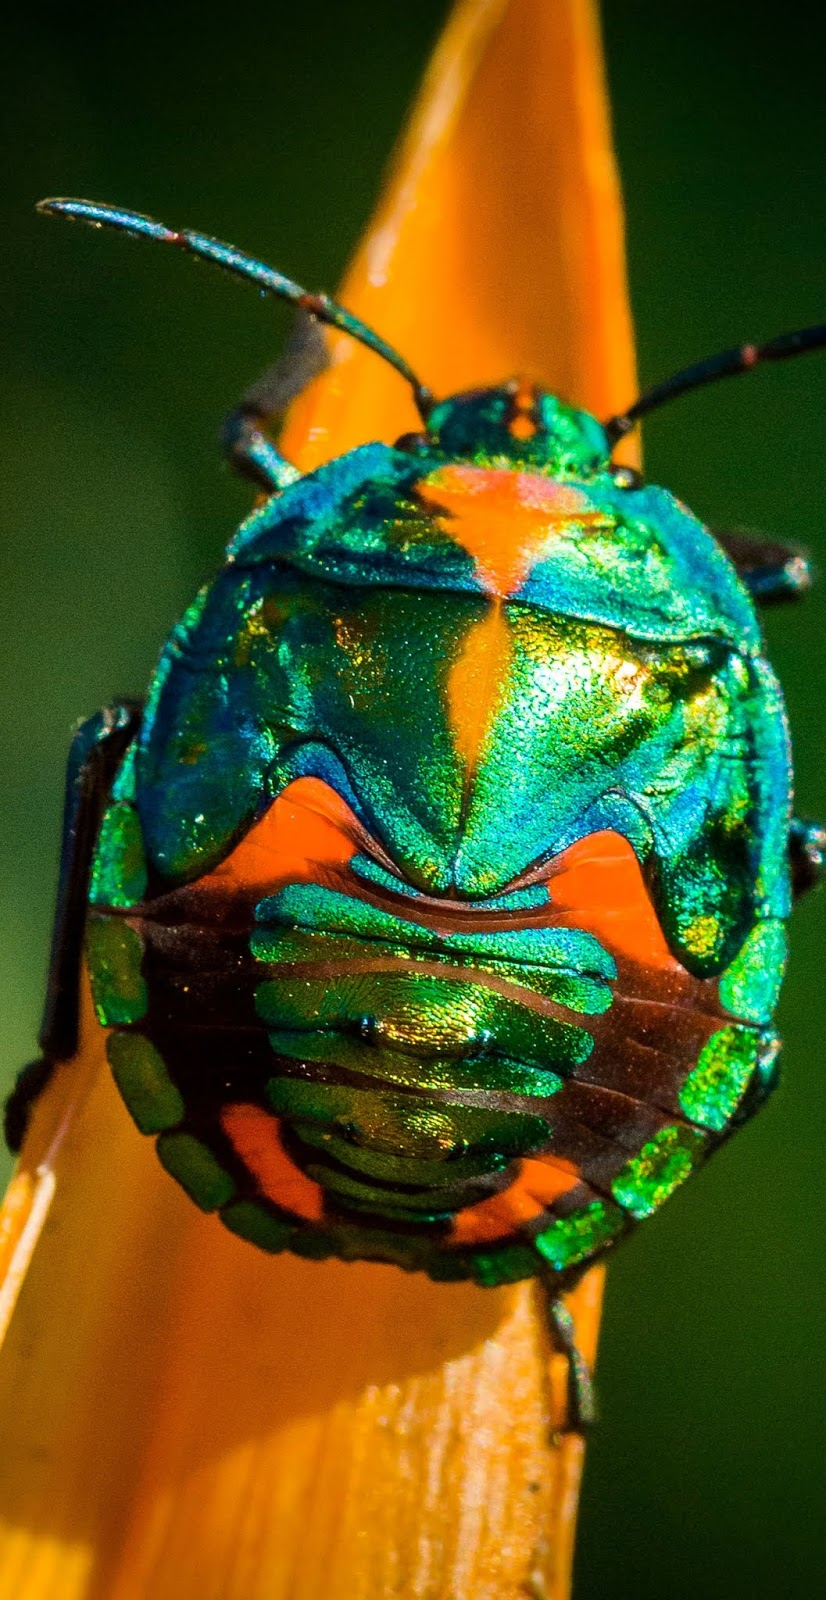 A colorful rainbow beetle.